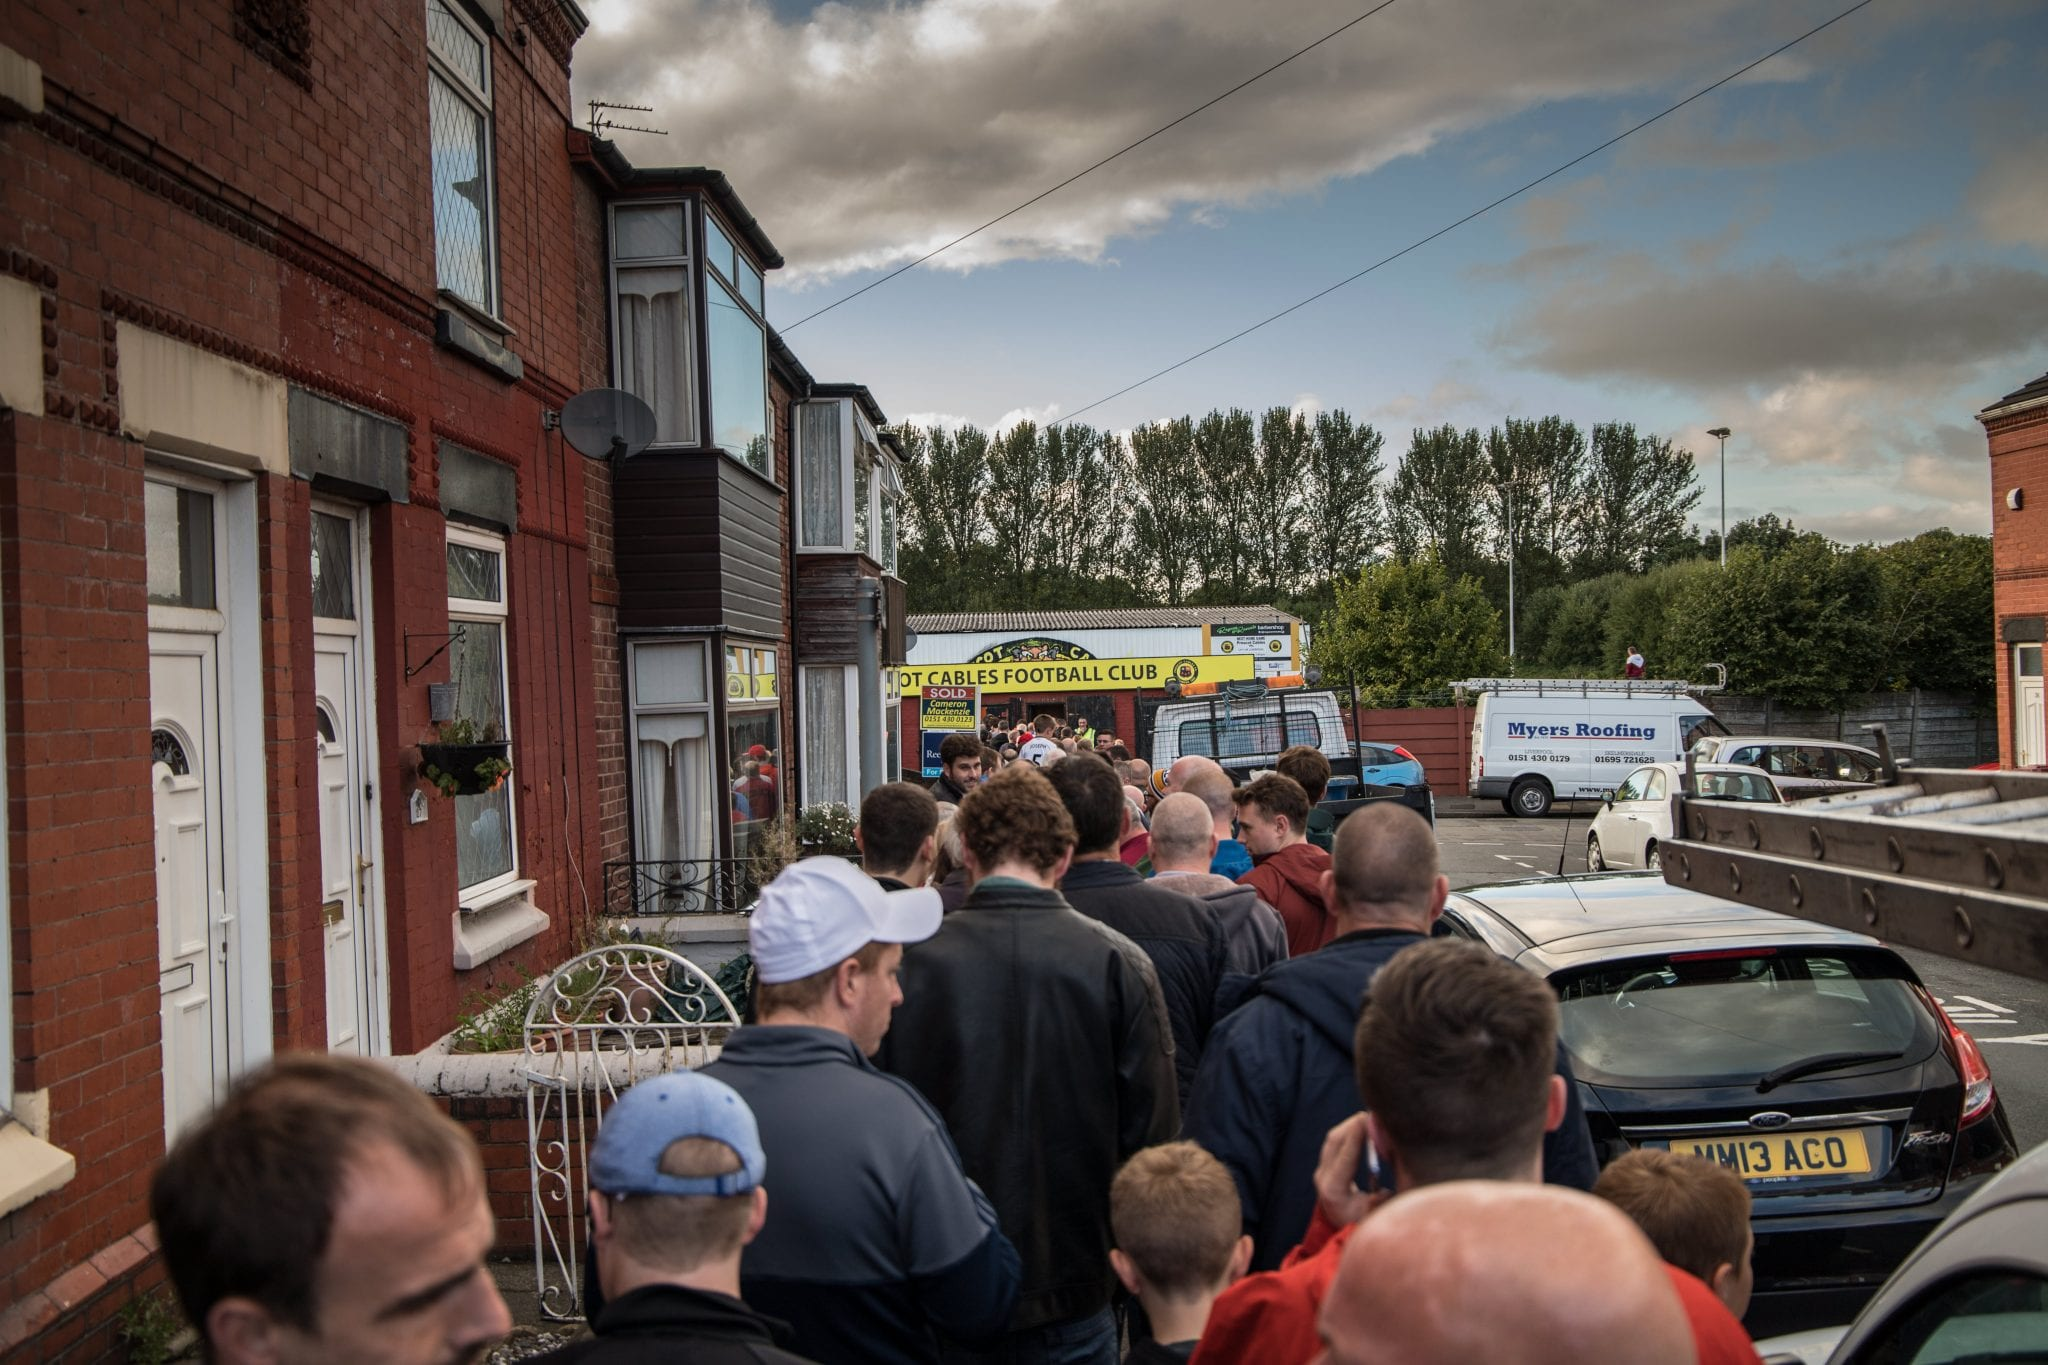 The crowd queuing for the FA Cup tie between Prescot Cables and City of Liverpool